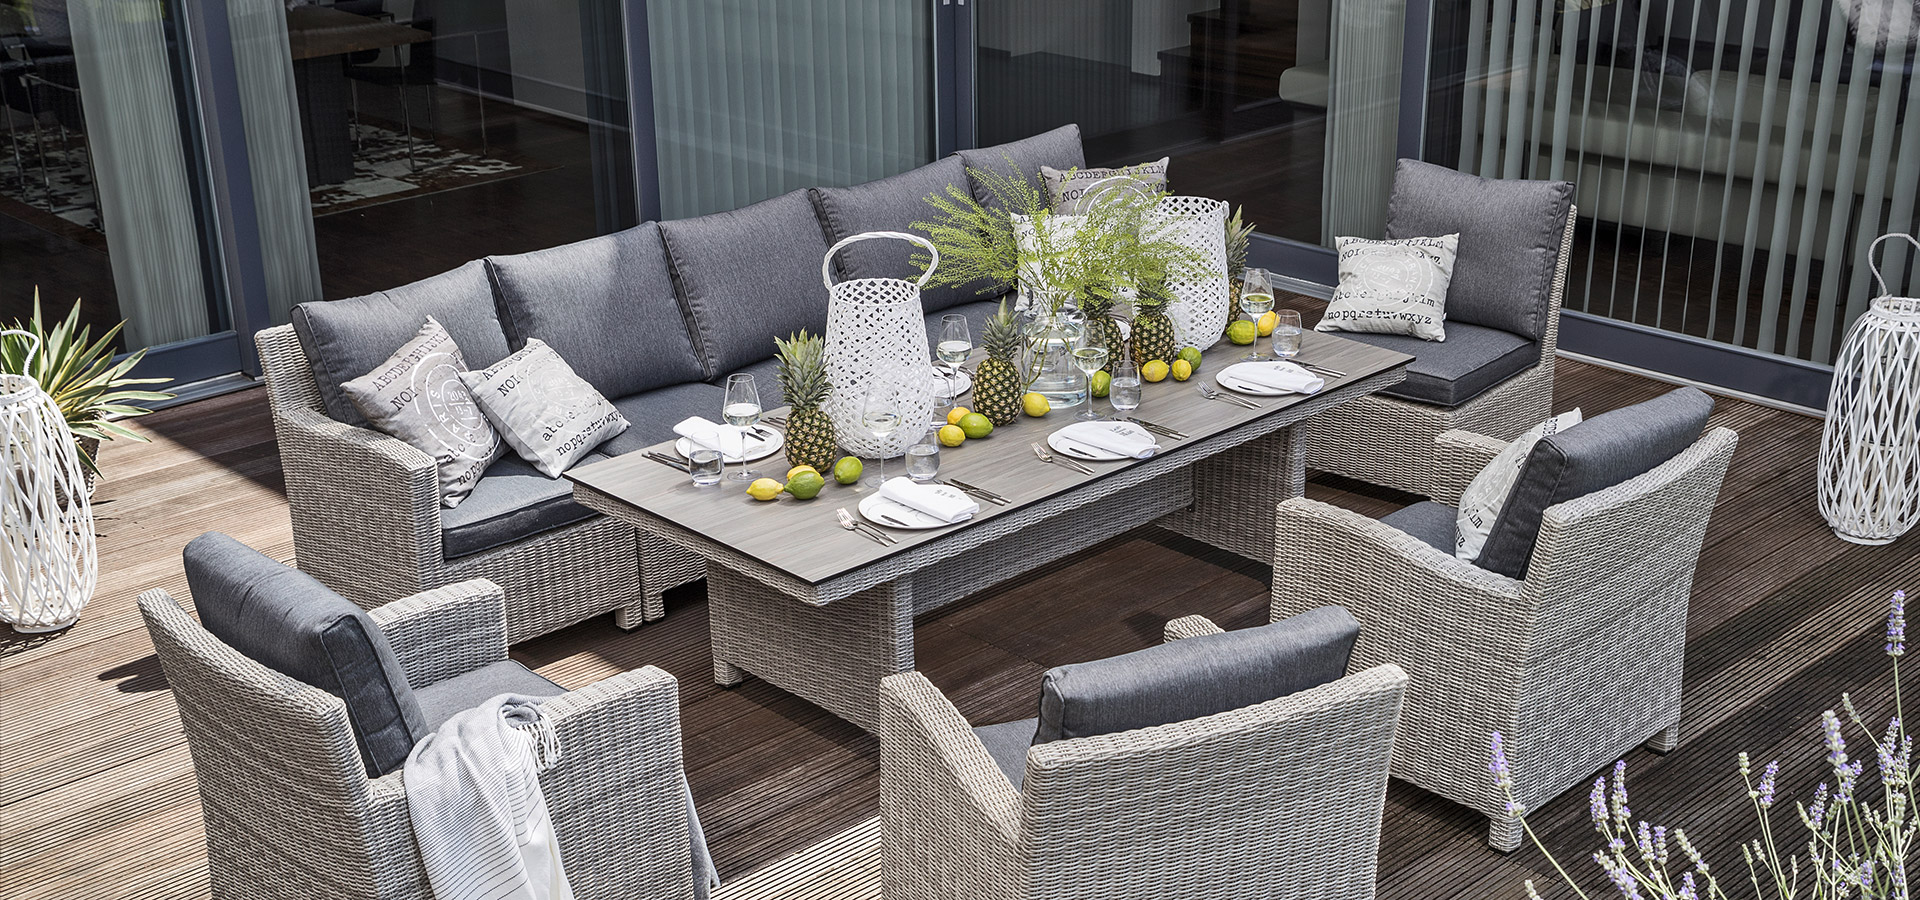 Geflecht Loungemöbel Terrasse